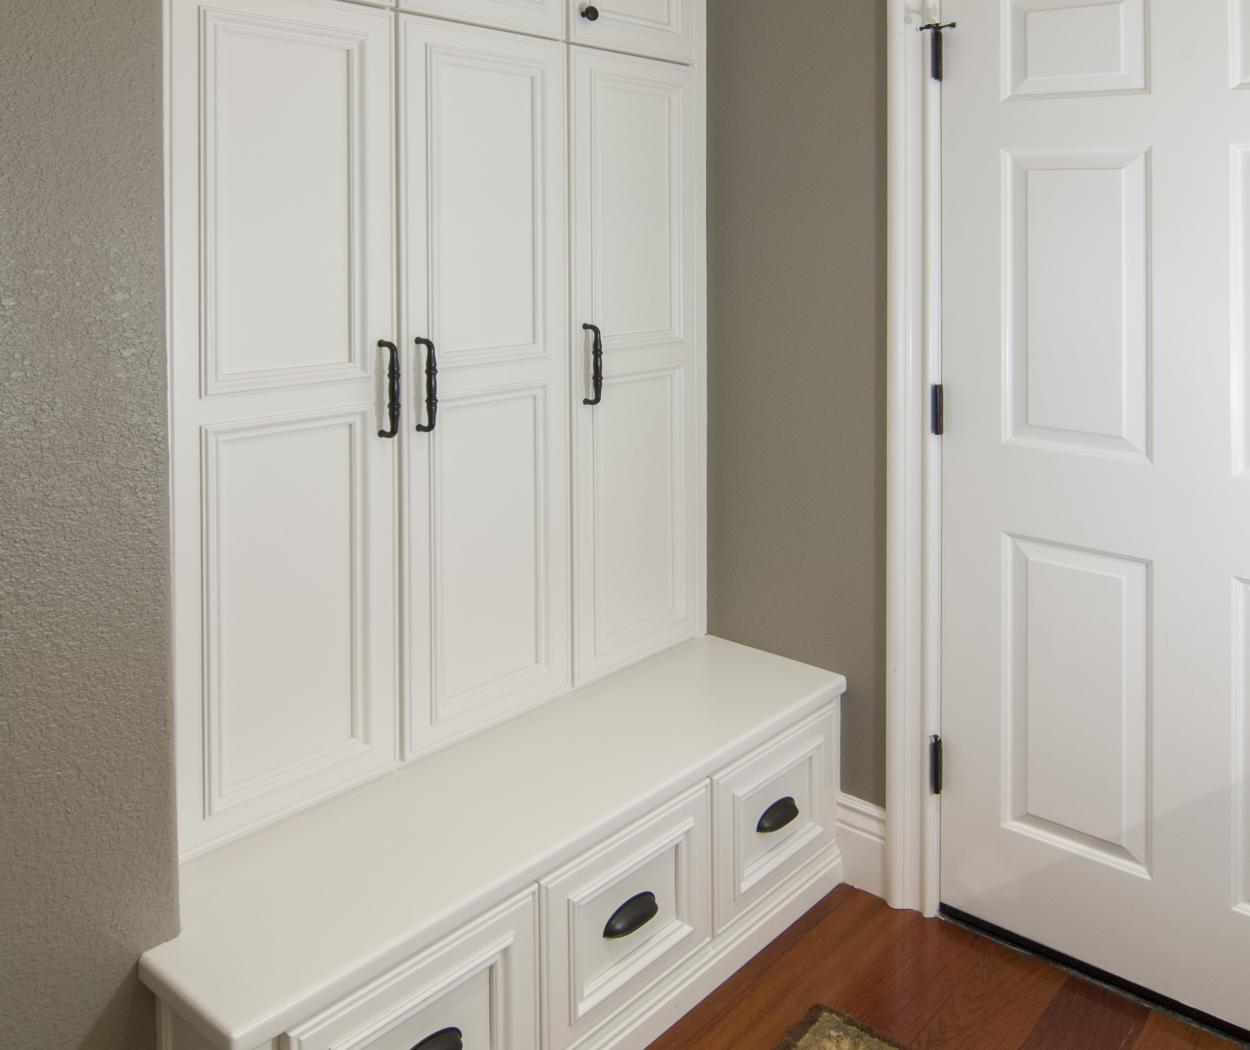 Beautiful Transitional Built-In with a Bench Seat and Dark Knobs - Pulls